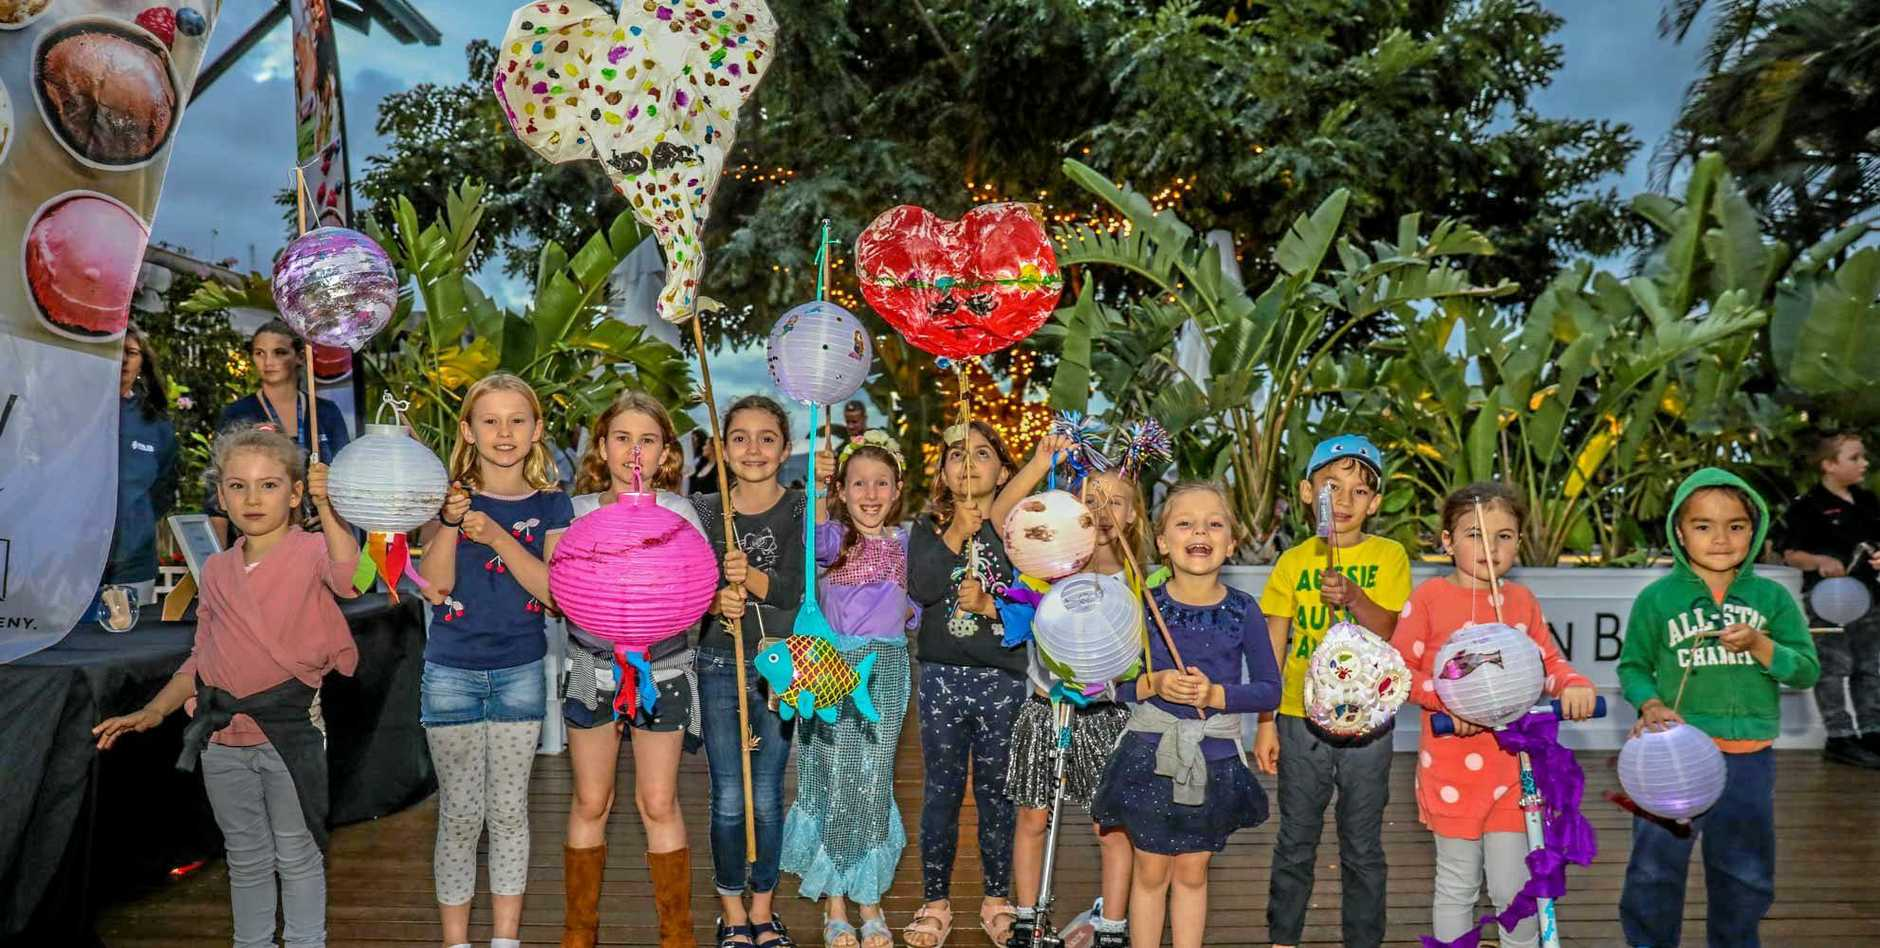 Shining a light on the Great Barrier Reef during the Coral Sea Marina Resort Lantern Parade.